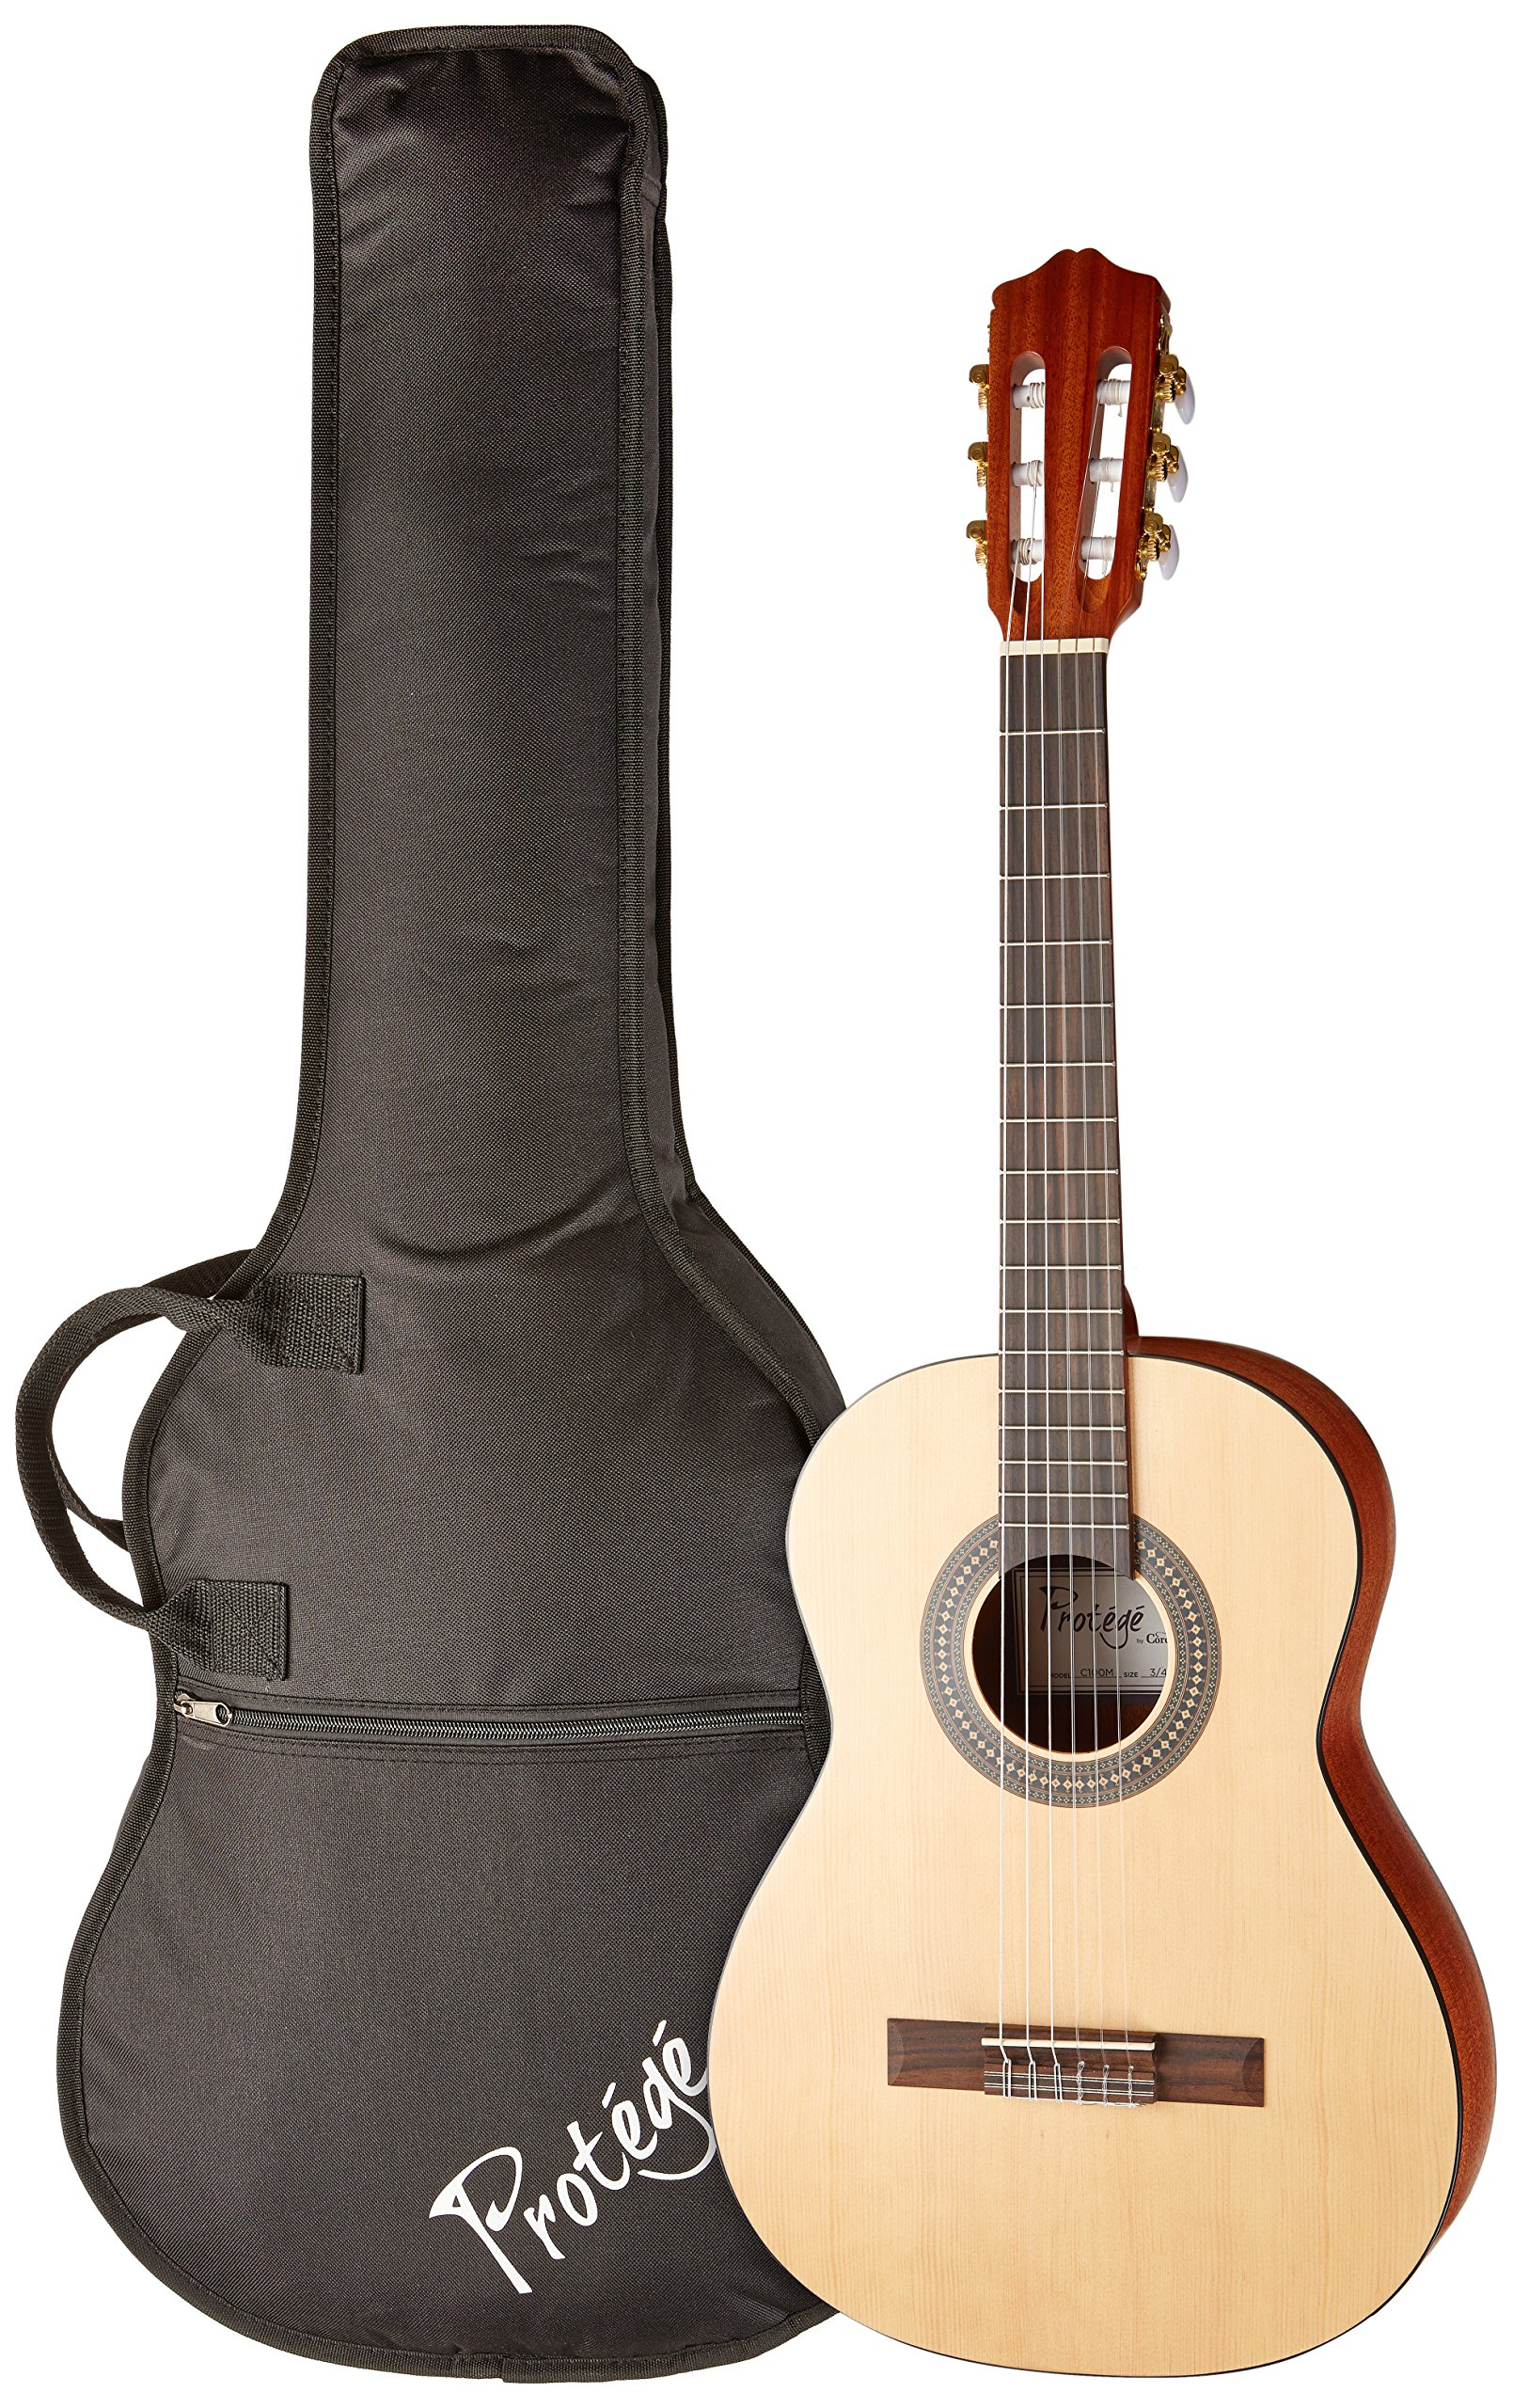 Protege by Cordoba C100M 3/4 Size Classical Guitar with Gig Bag and Tuner (Amazon Exclusive)